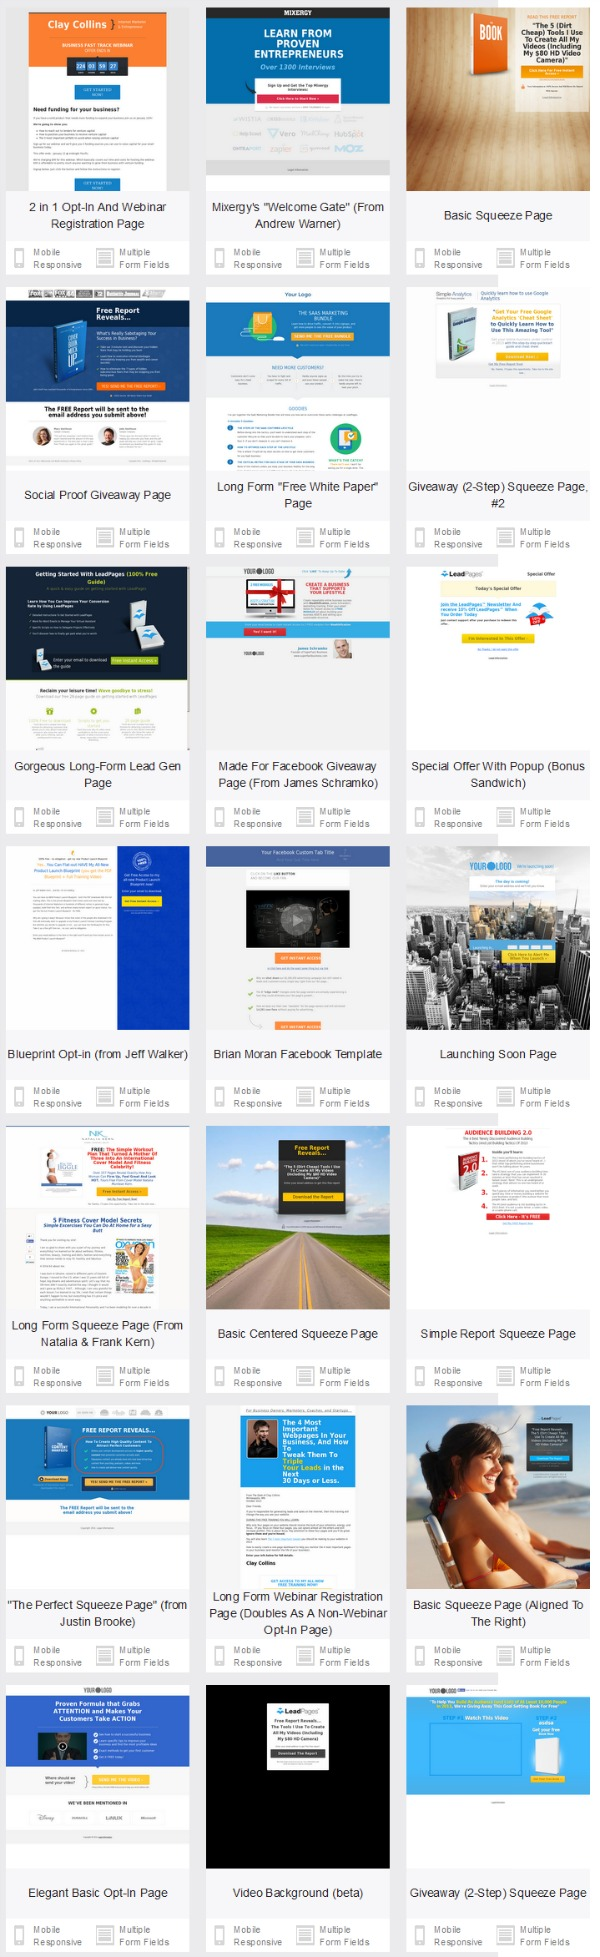 Leadpages Plans, Costs, Benefits & Tutorials – 2018 Update Review